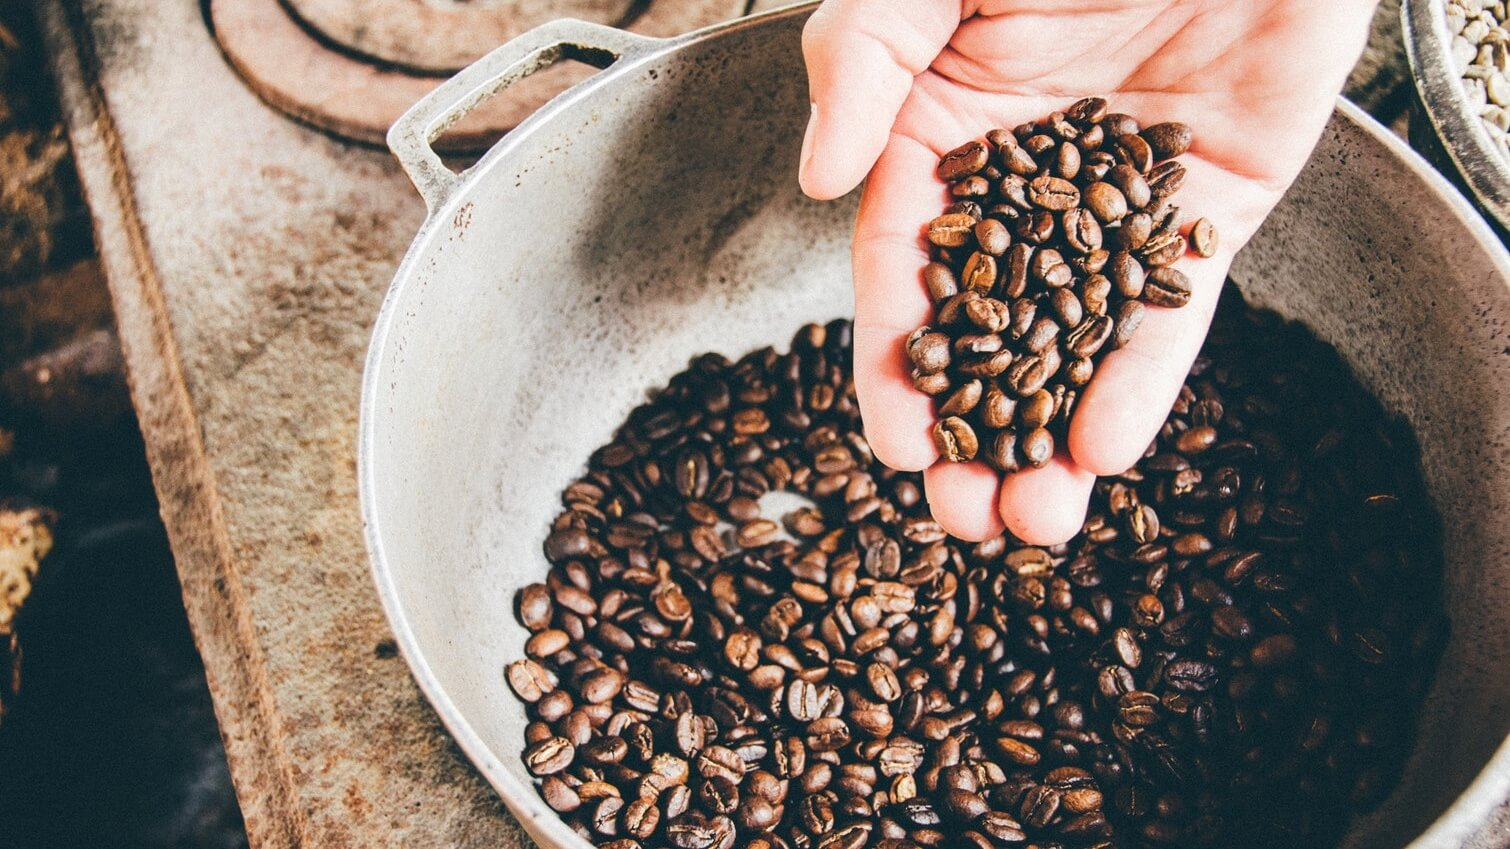 Sustainable Palm Oil Replacement Found in Coffee